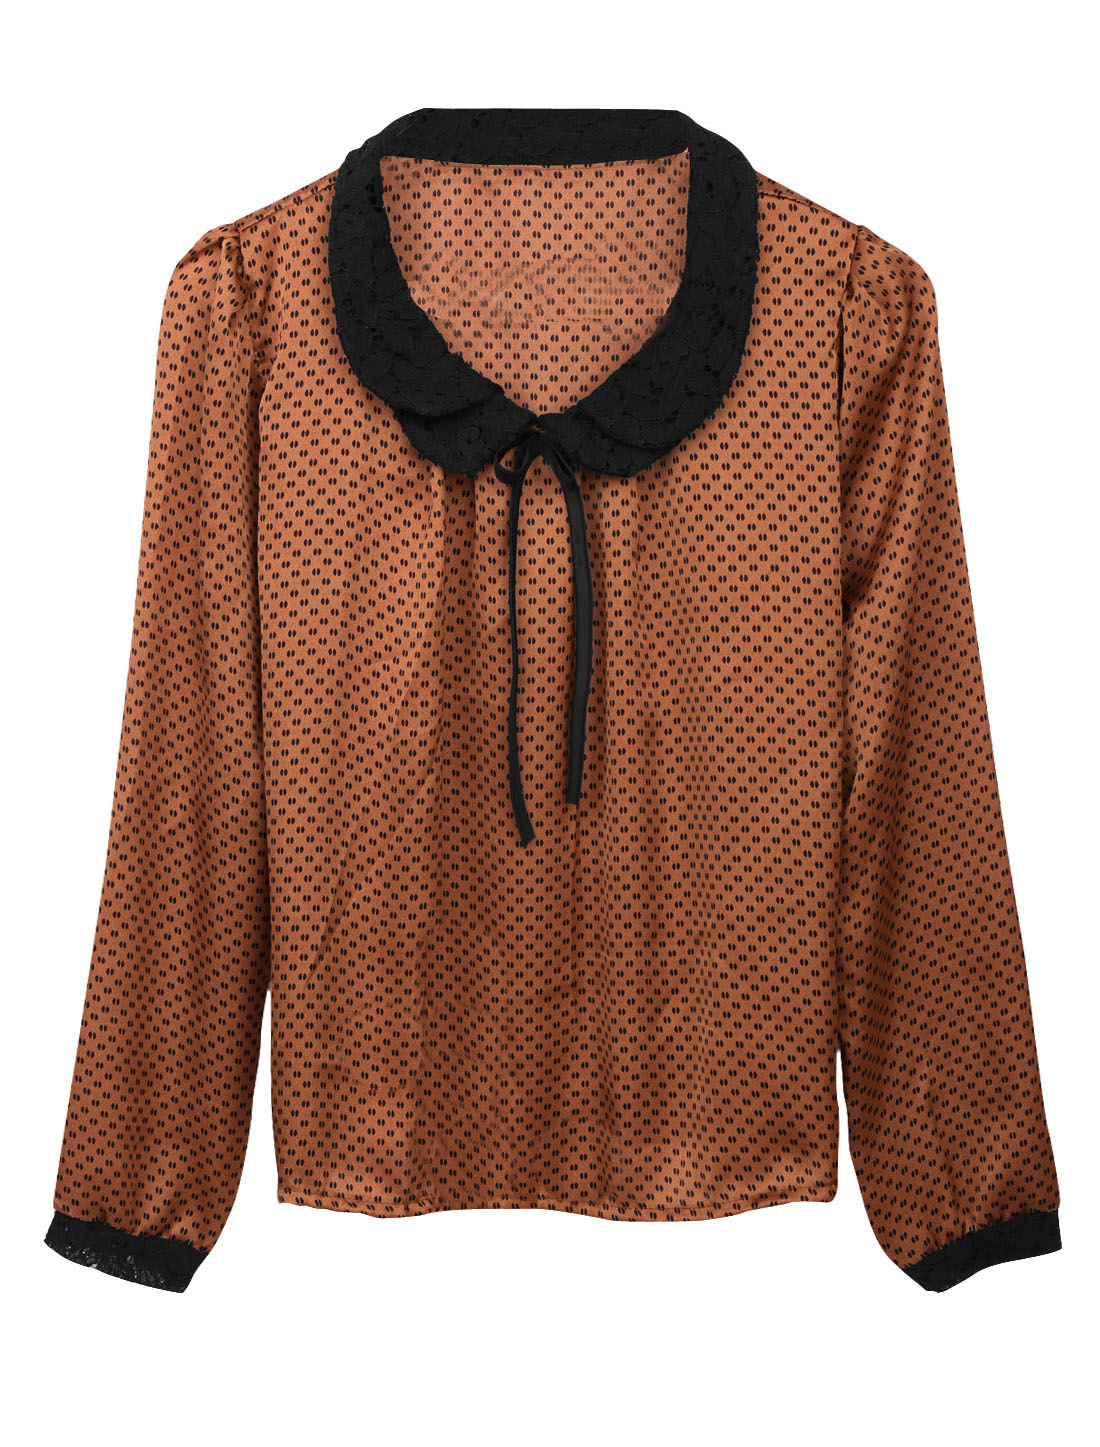 Women Peter Pan Collar Long Sleeves Dots Top Brown L